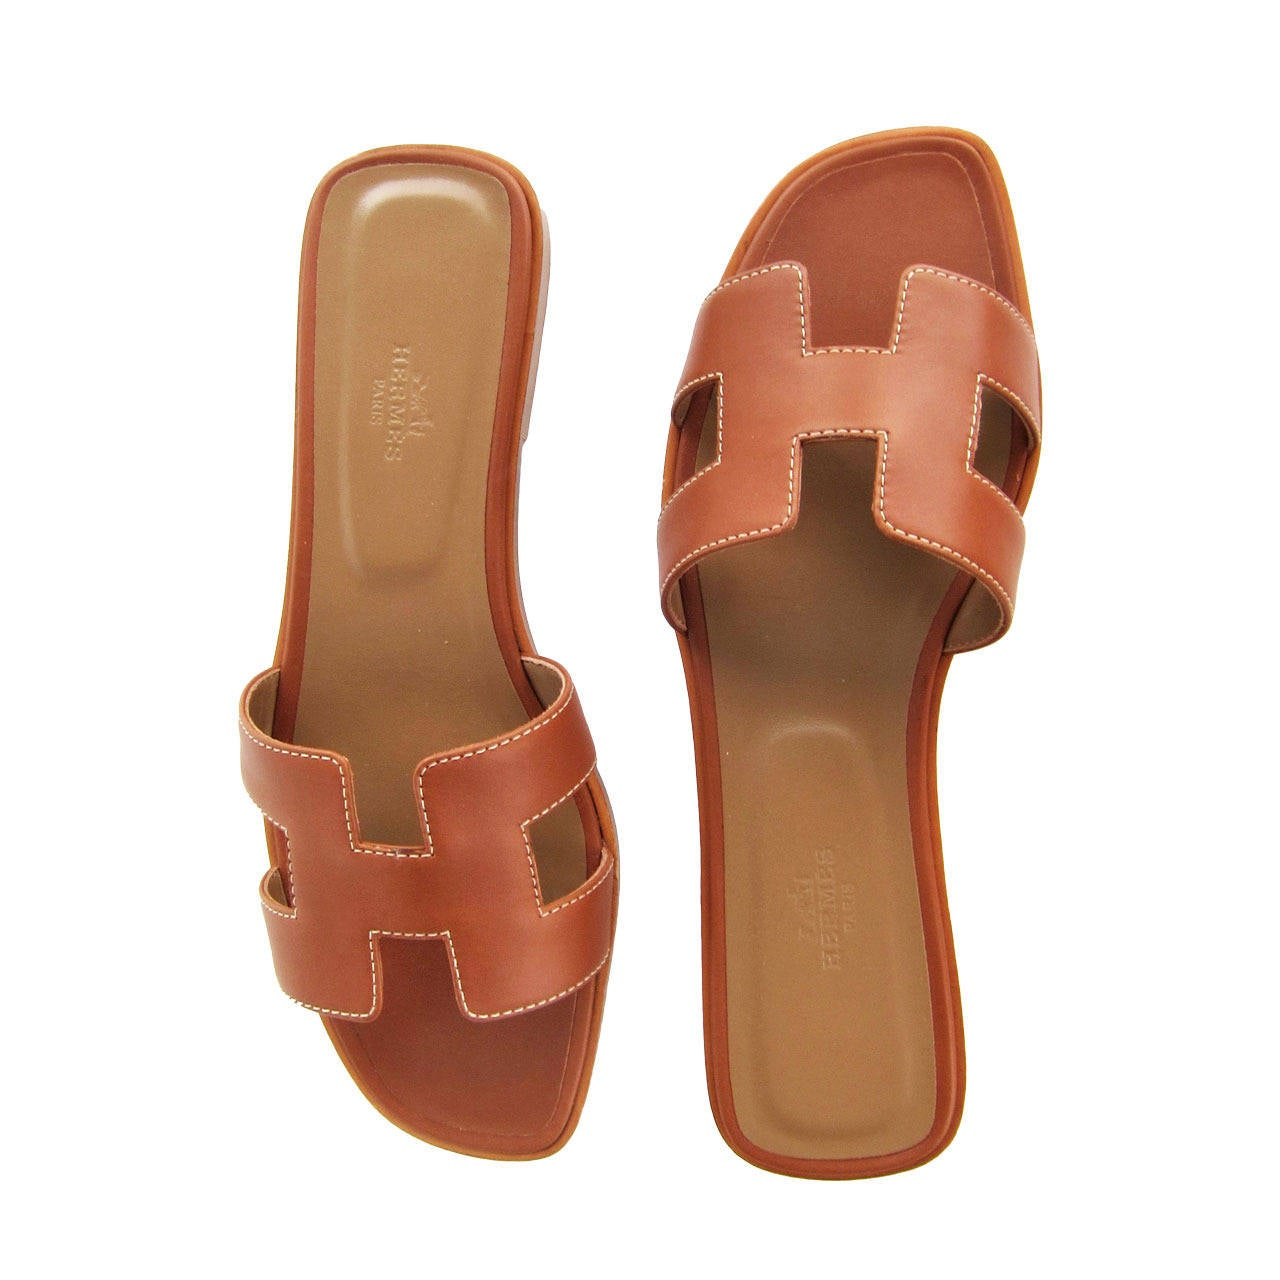 Hermes Gold Oran Box Leather Sandals Size 40 Summer 1